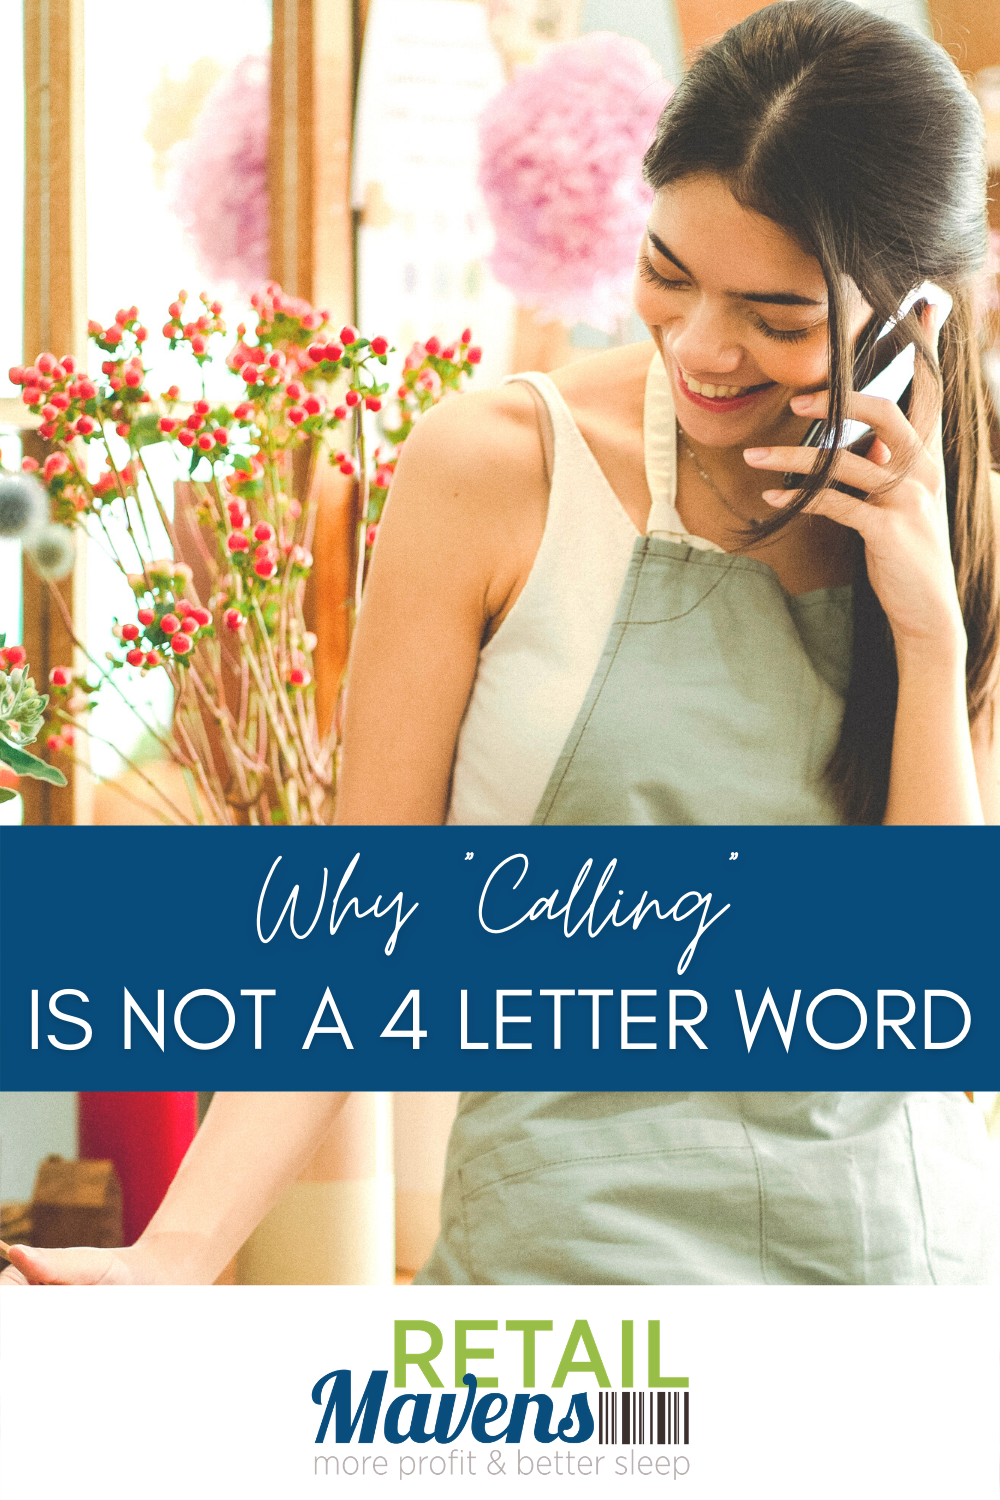 Why calling is not a 4 letter word